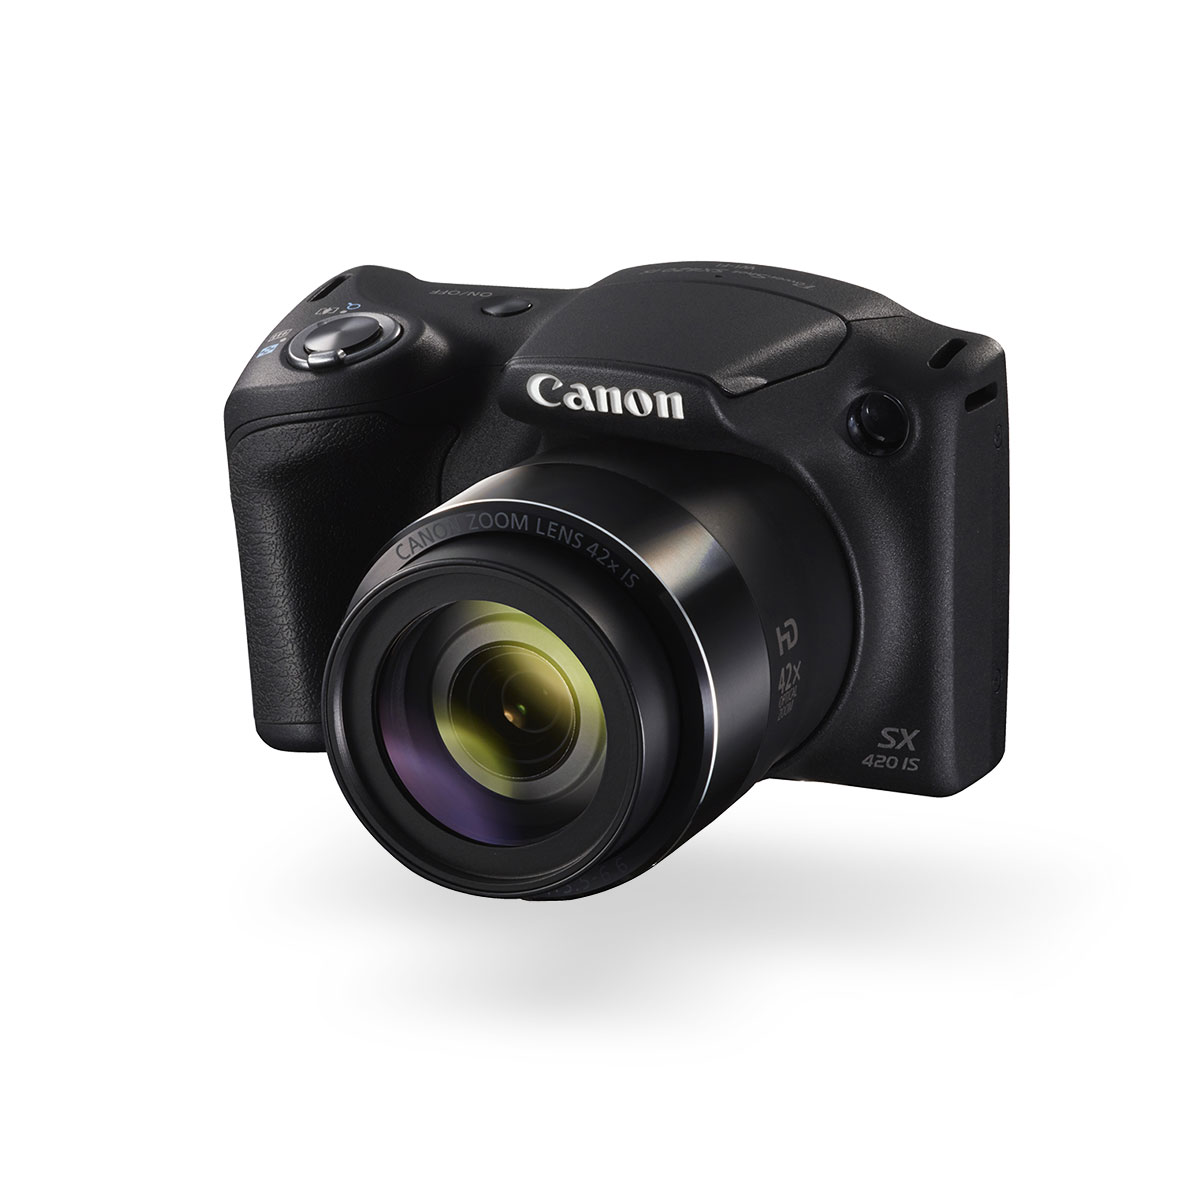 Canon PowerShot SX420 IS digital compact camera black front angled